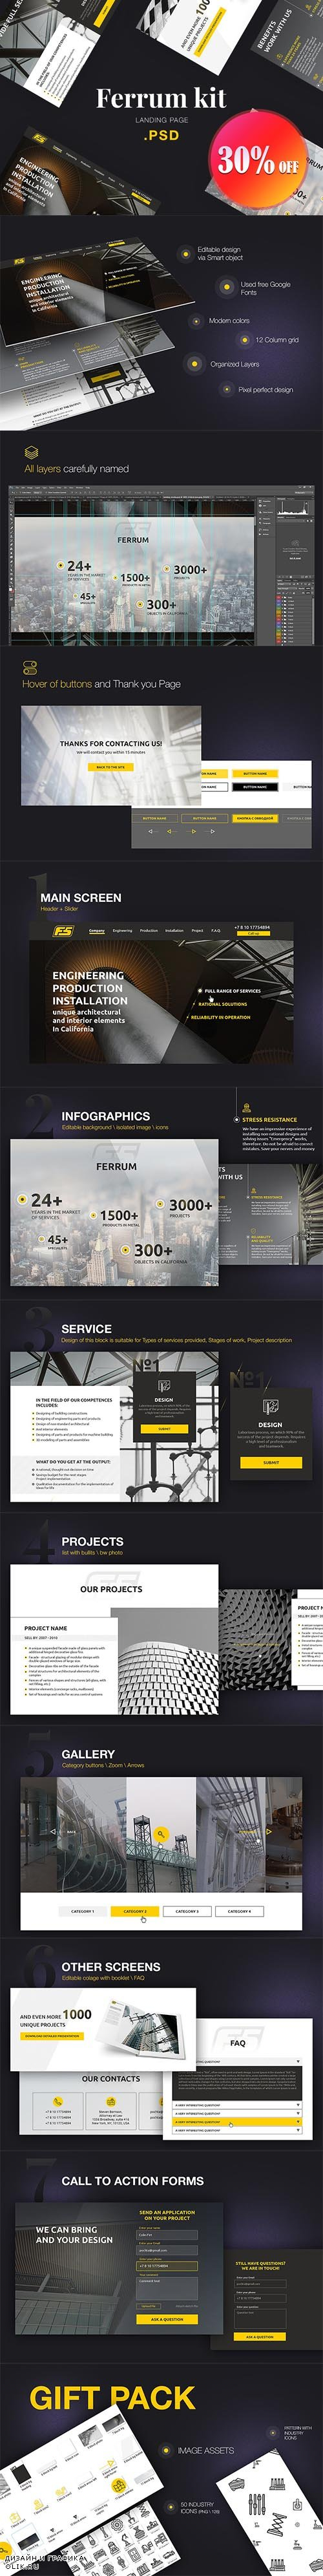 Ferrum Kit for Industry Landing Page - CM 1455196